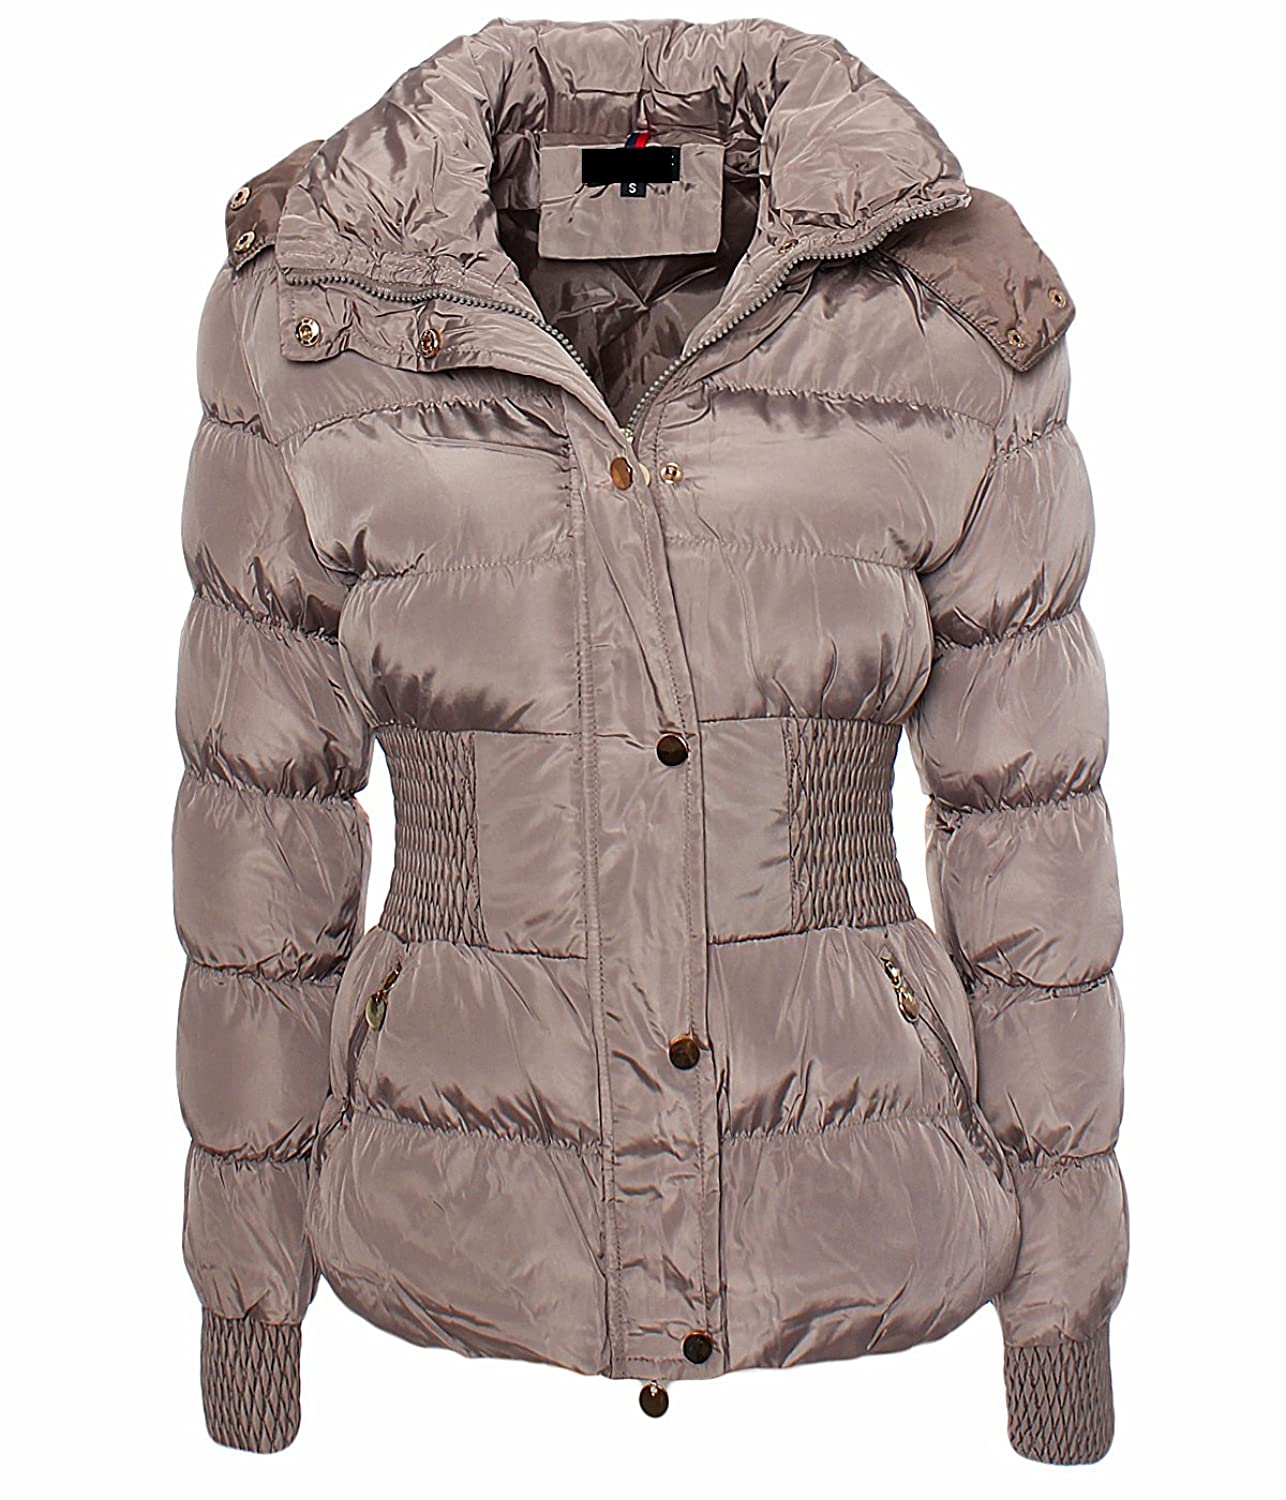 LC1922 Damen Daunen Jacke Steppjacke Parka Mantel Winterjacke Warm Fell Kapuze Outdoor